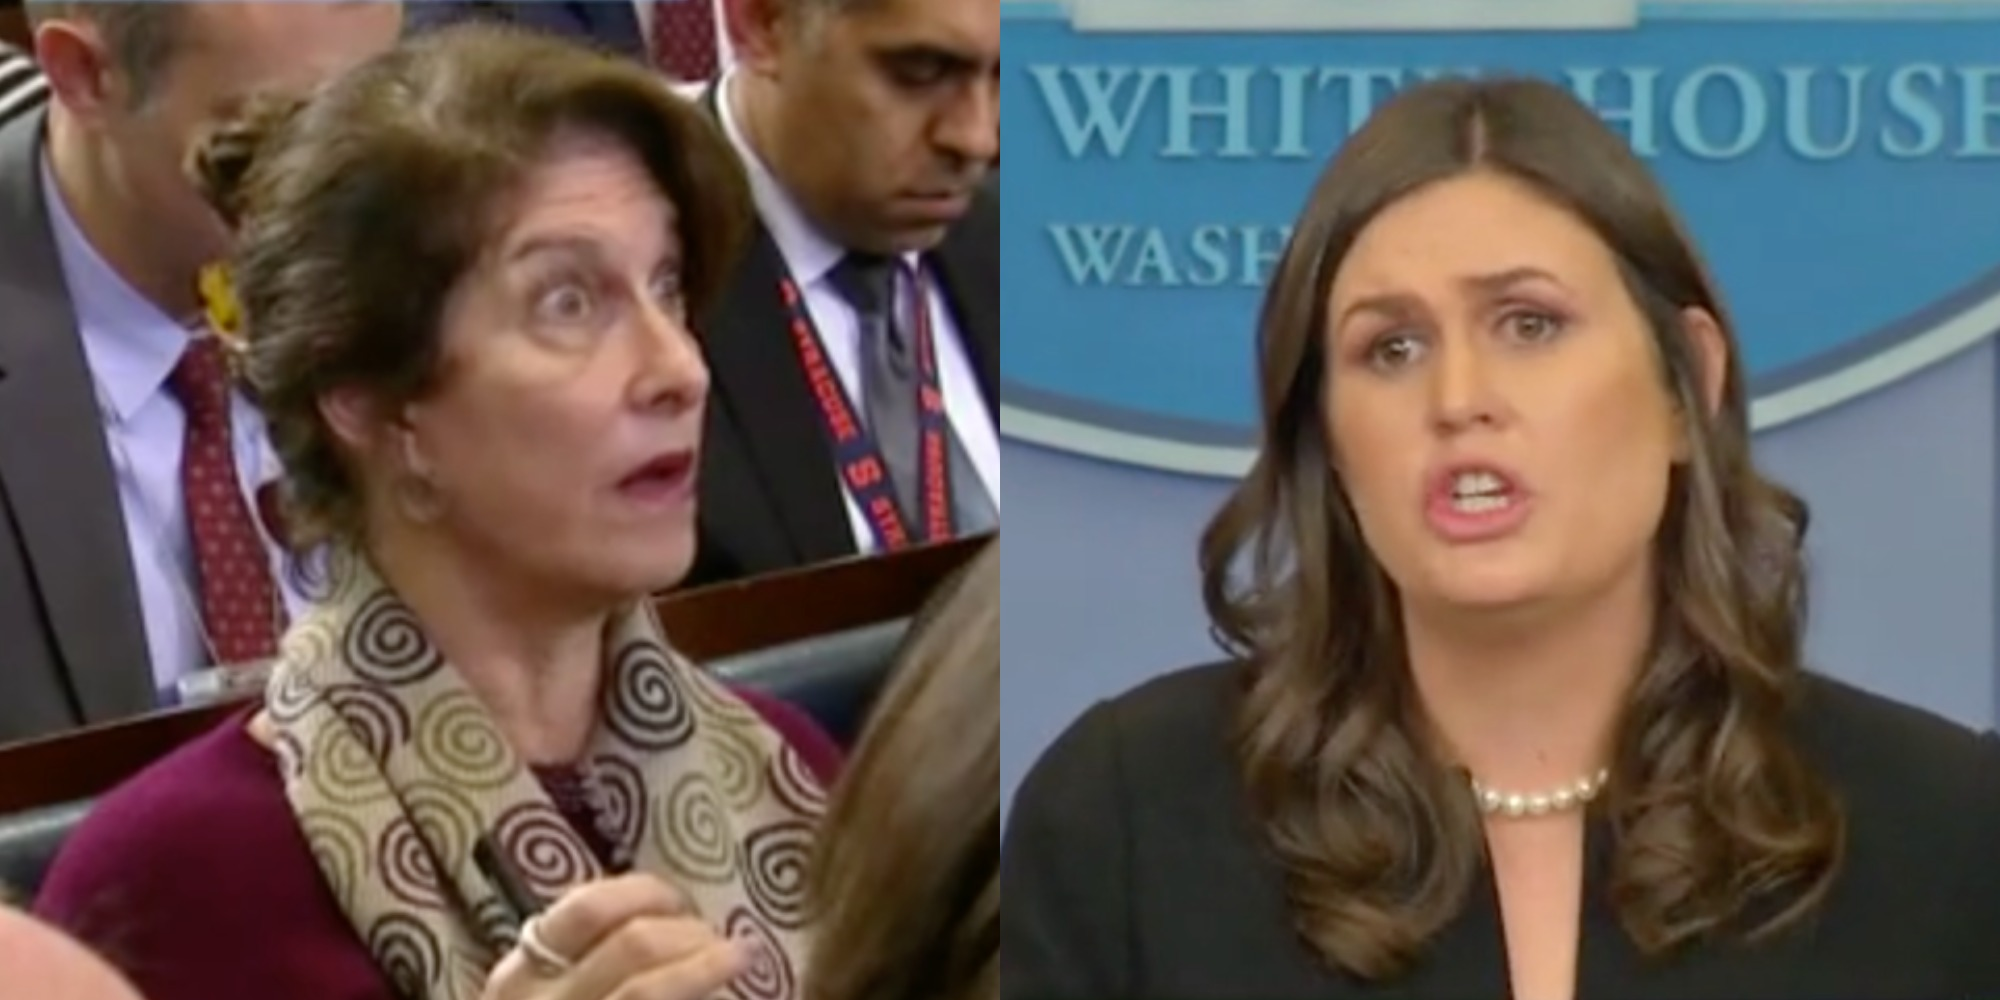 Sanders Asked If Trump Is 'Corrupt.' Room Goes Silent When Reminded Of A Certain Hillary Clinton